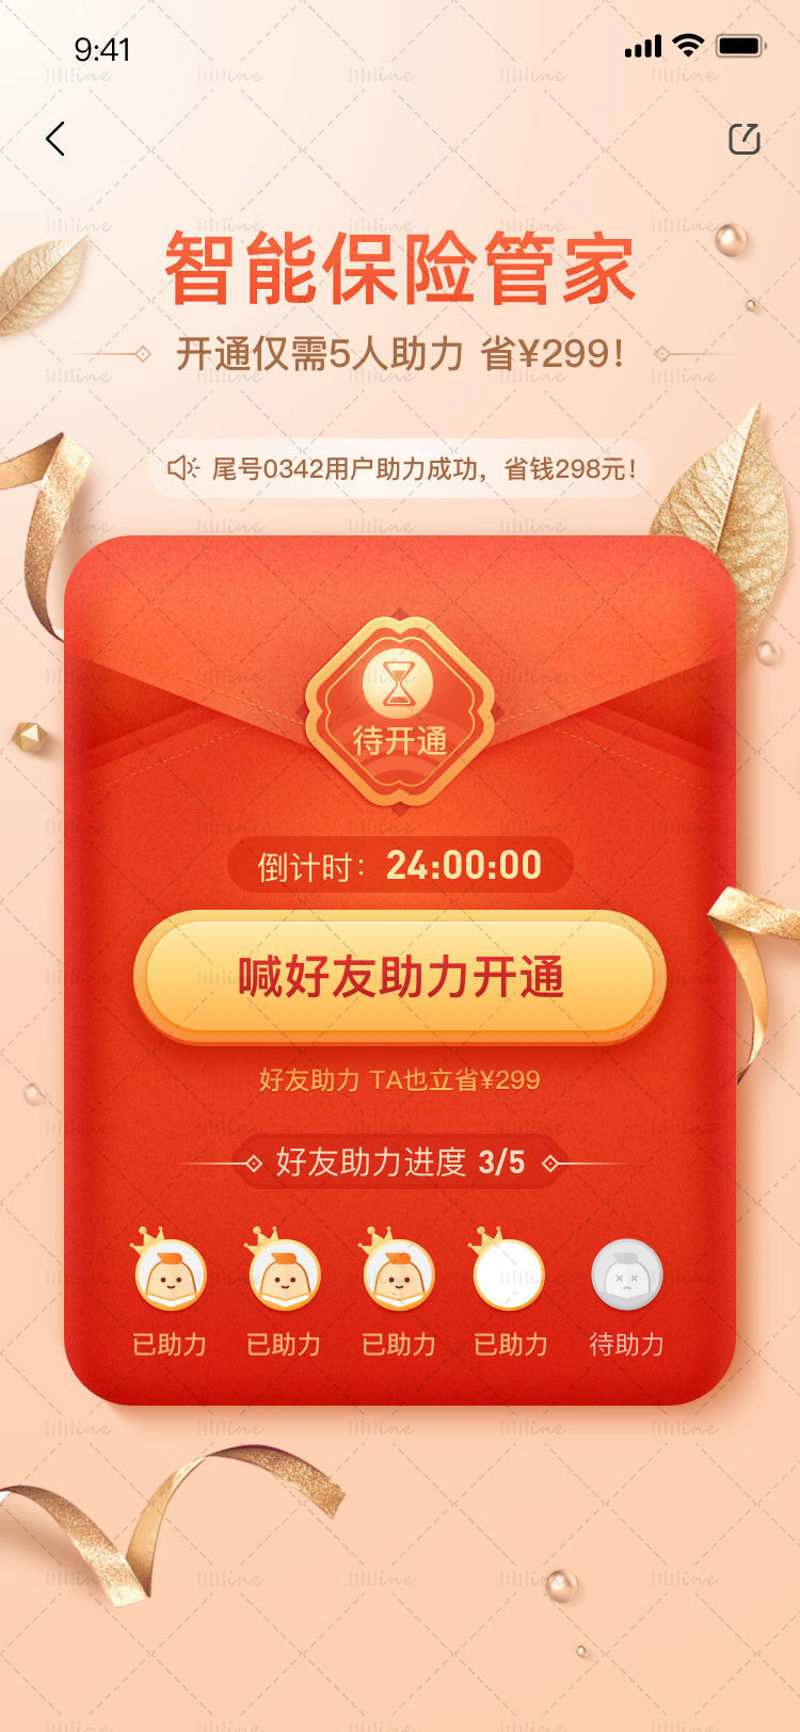 Festive red envelope sharing invitation to help event page countdown APP UI template